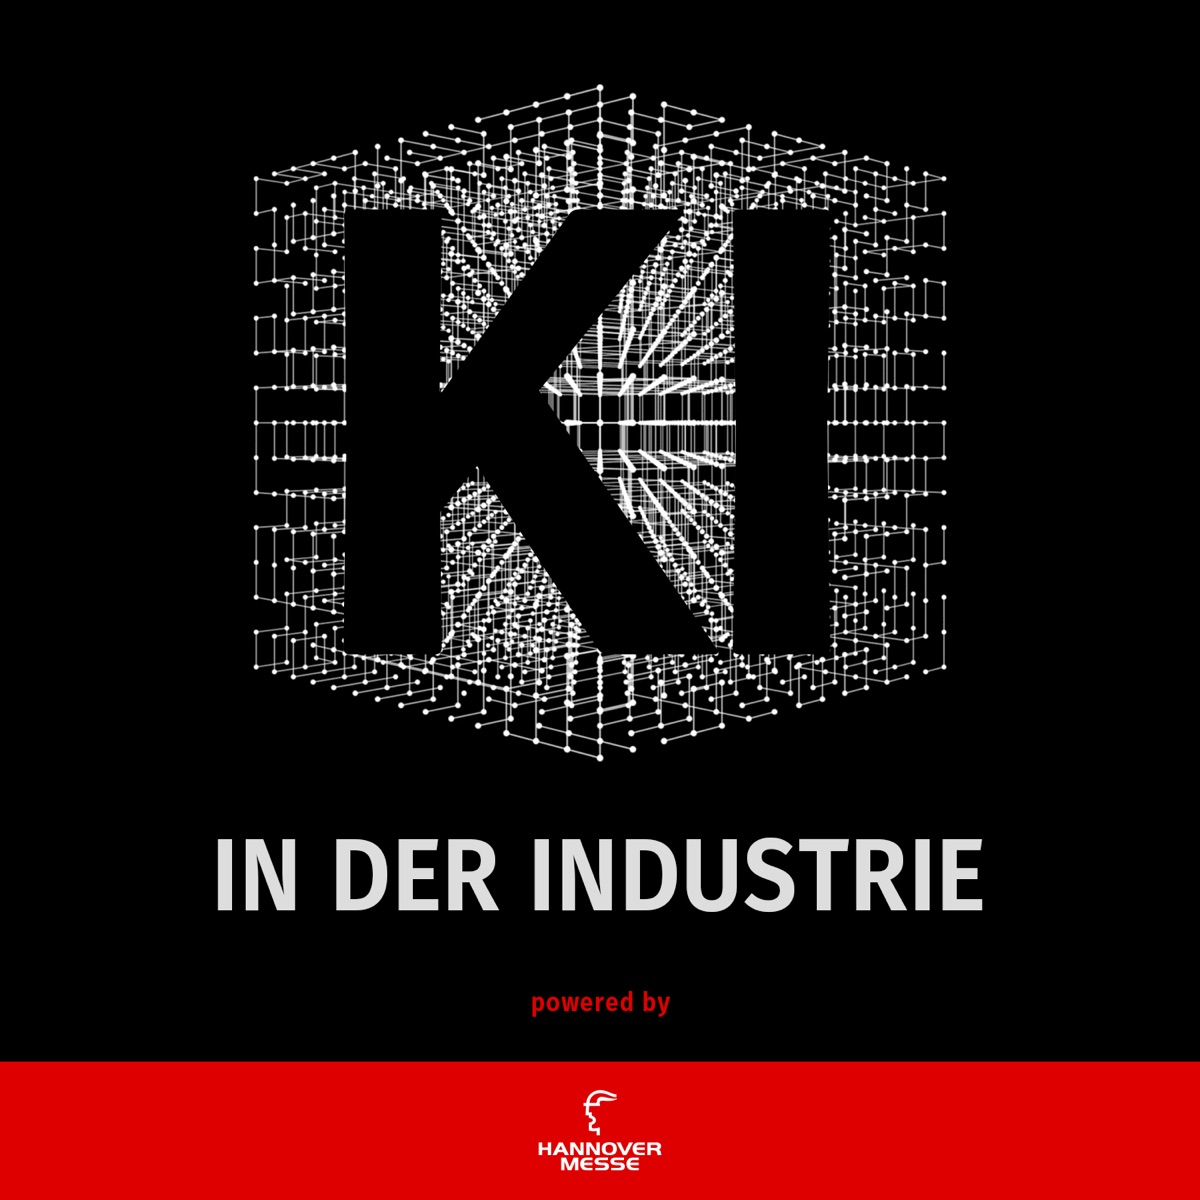 KI und Human Machine Interfaces (HMI)